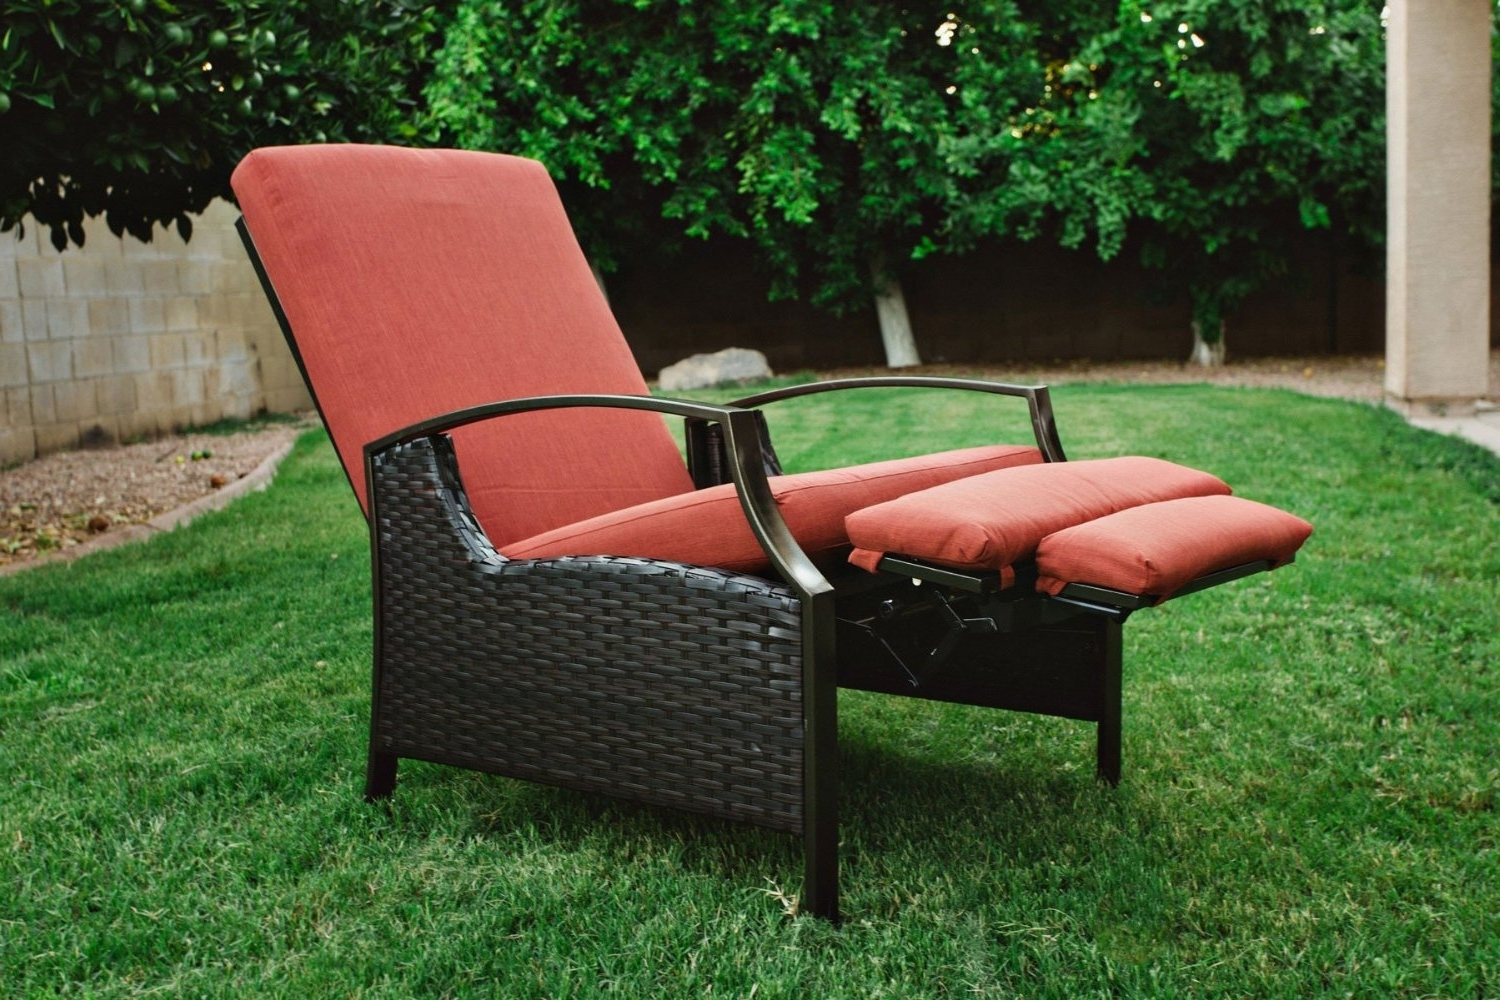 Best Value Outdoor Wicker Recliners – The Best Recliner Throughout Most Recently Released Adjustable Pool Chaise Lounge Chair Recliners (View 2 of 15)